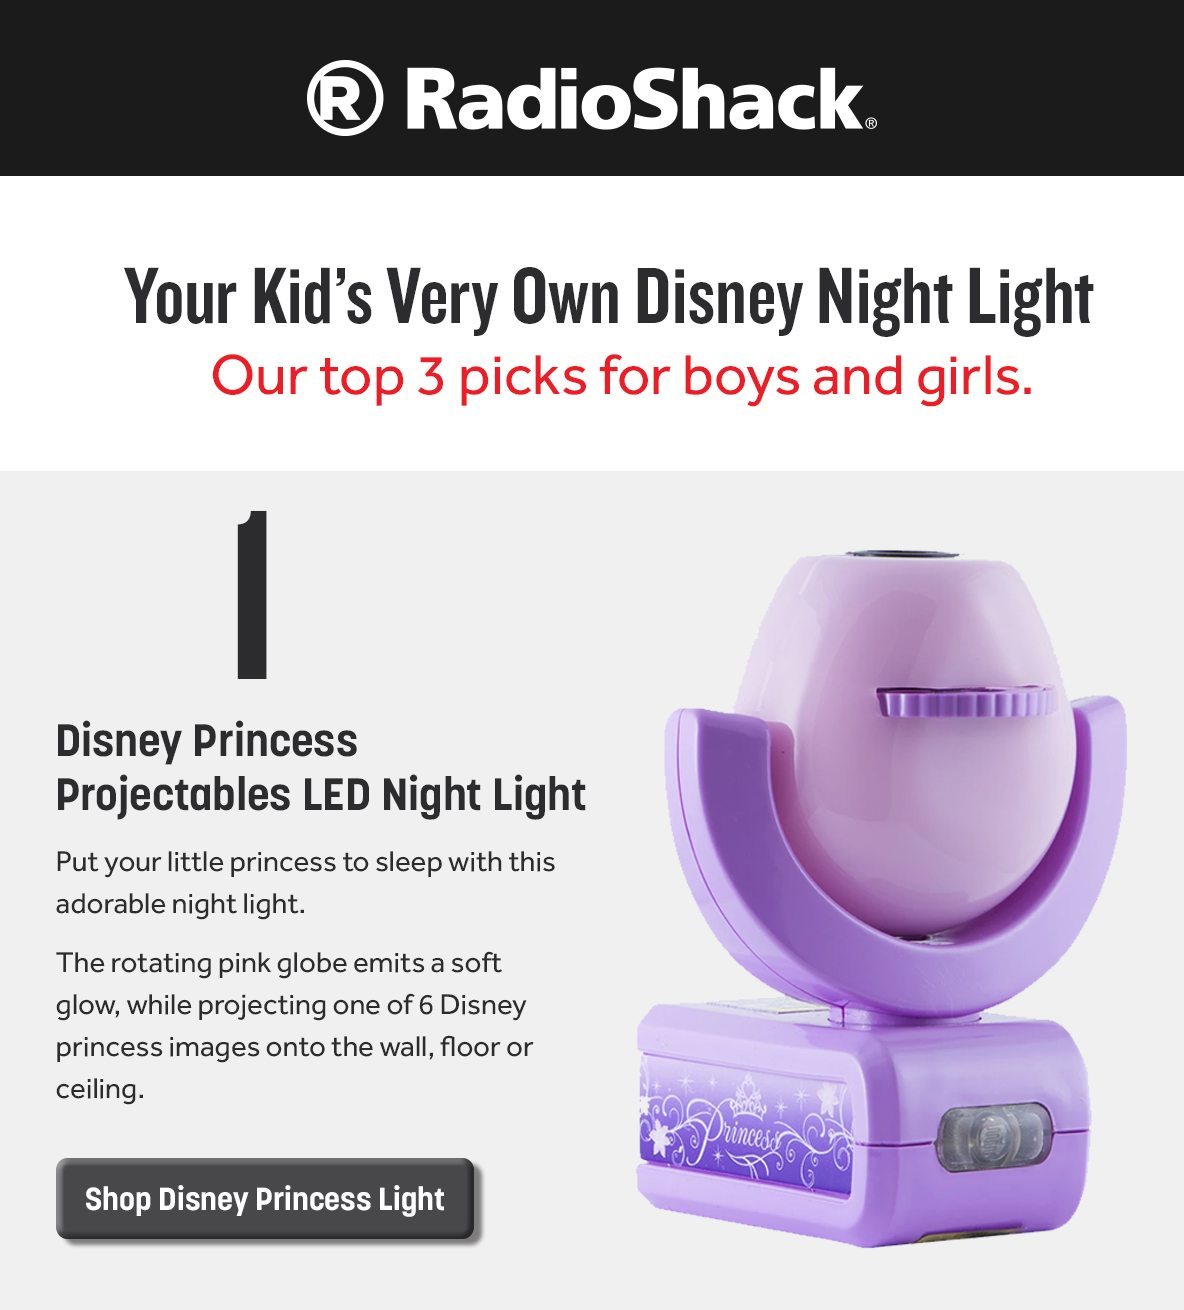 Disney Princess Projectables LED Night Light